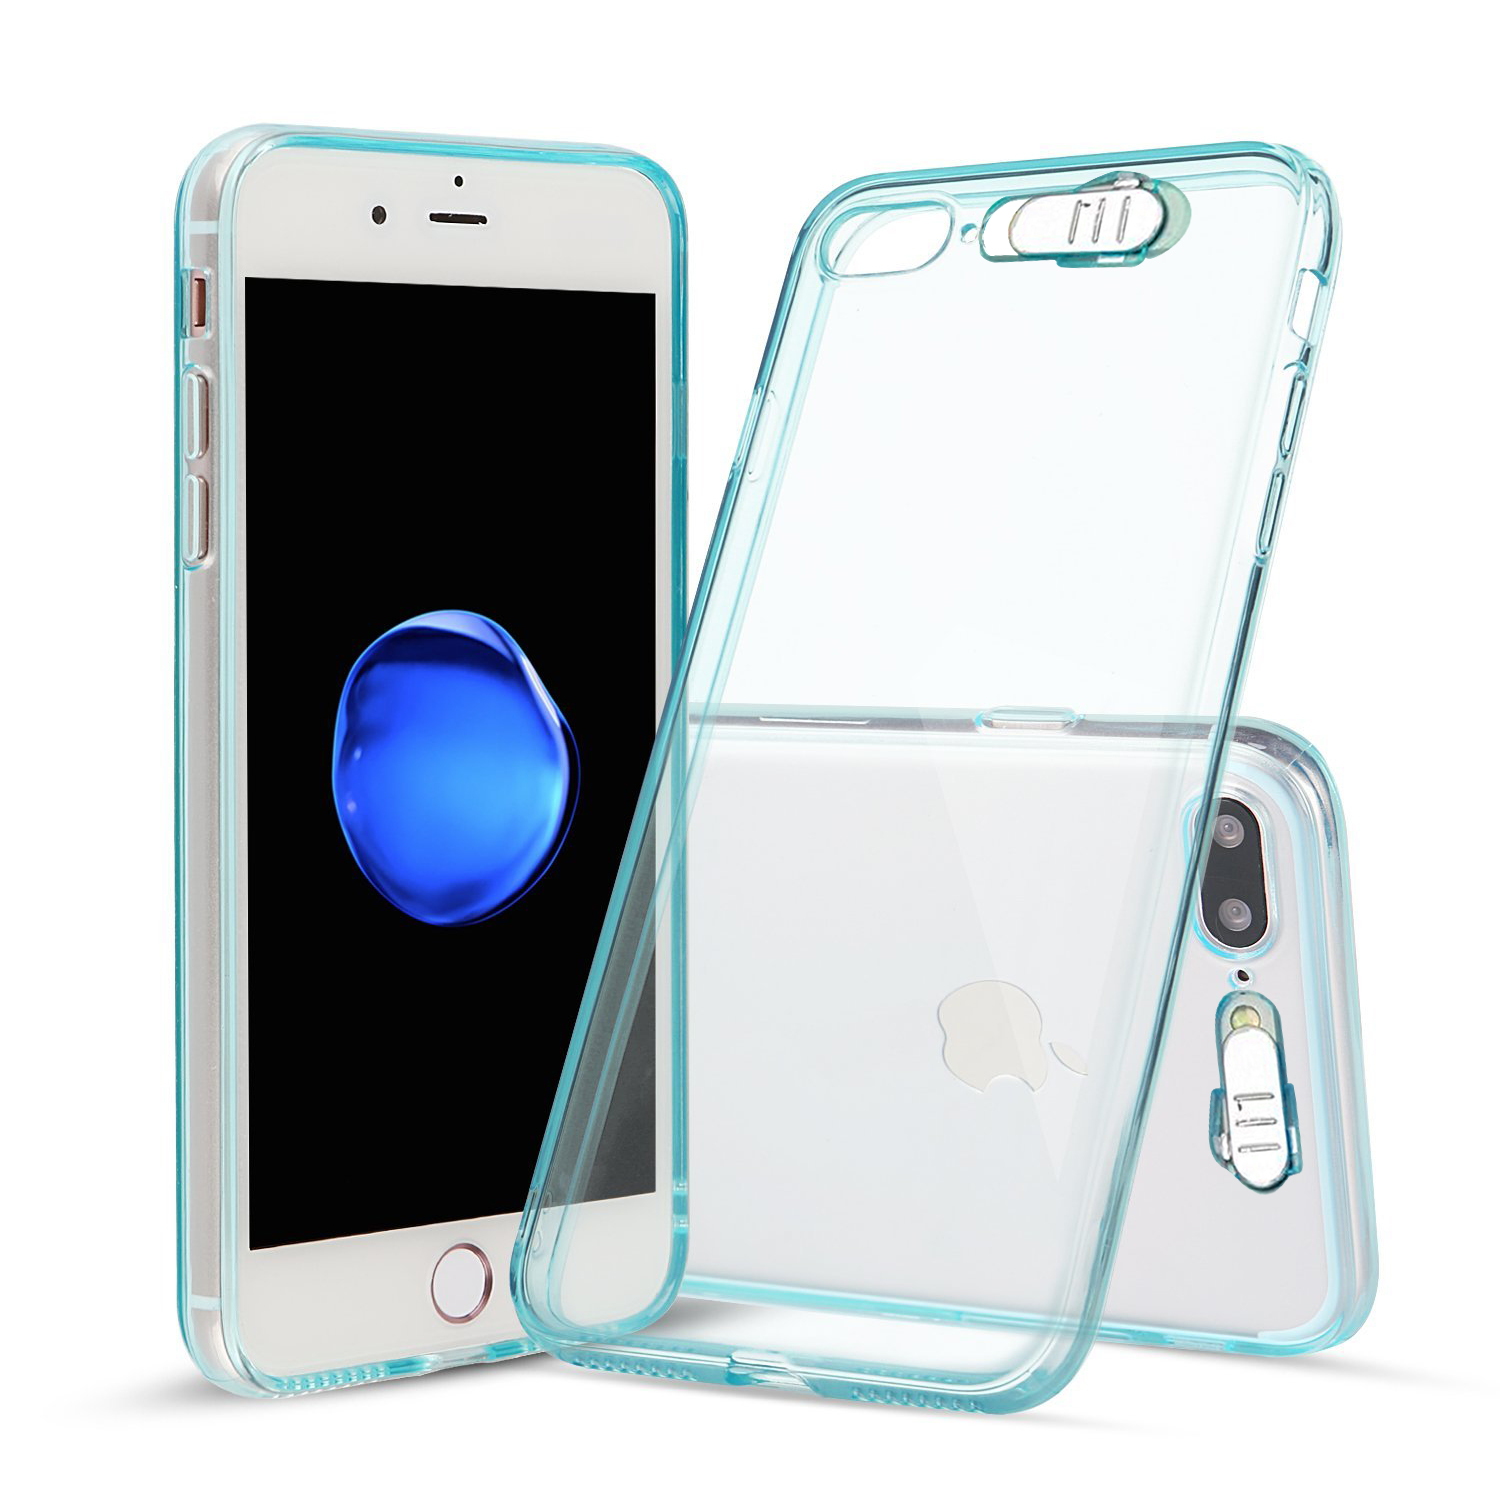 [REDshield] Apple iPhone 8 Plus / 7 Plus / 6S Plus / 6 Plus LED TPU Case, [Blue] Slim & Flexible Anti-shock [LED Light-Up Flashing] Crystal Silicone Protective TPU Gel Skin Case Cover